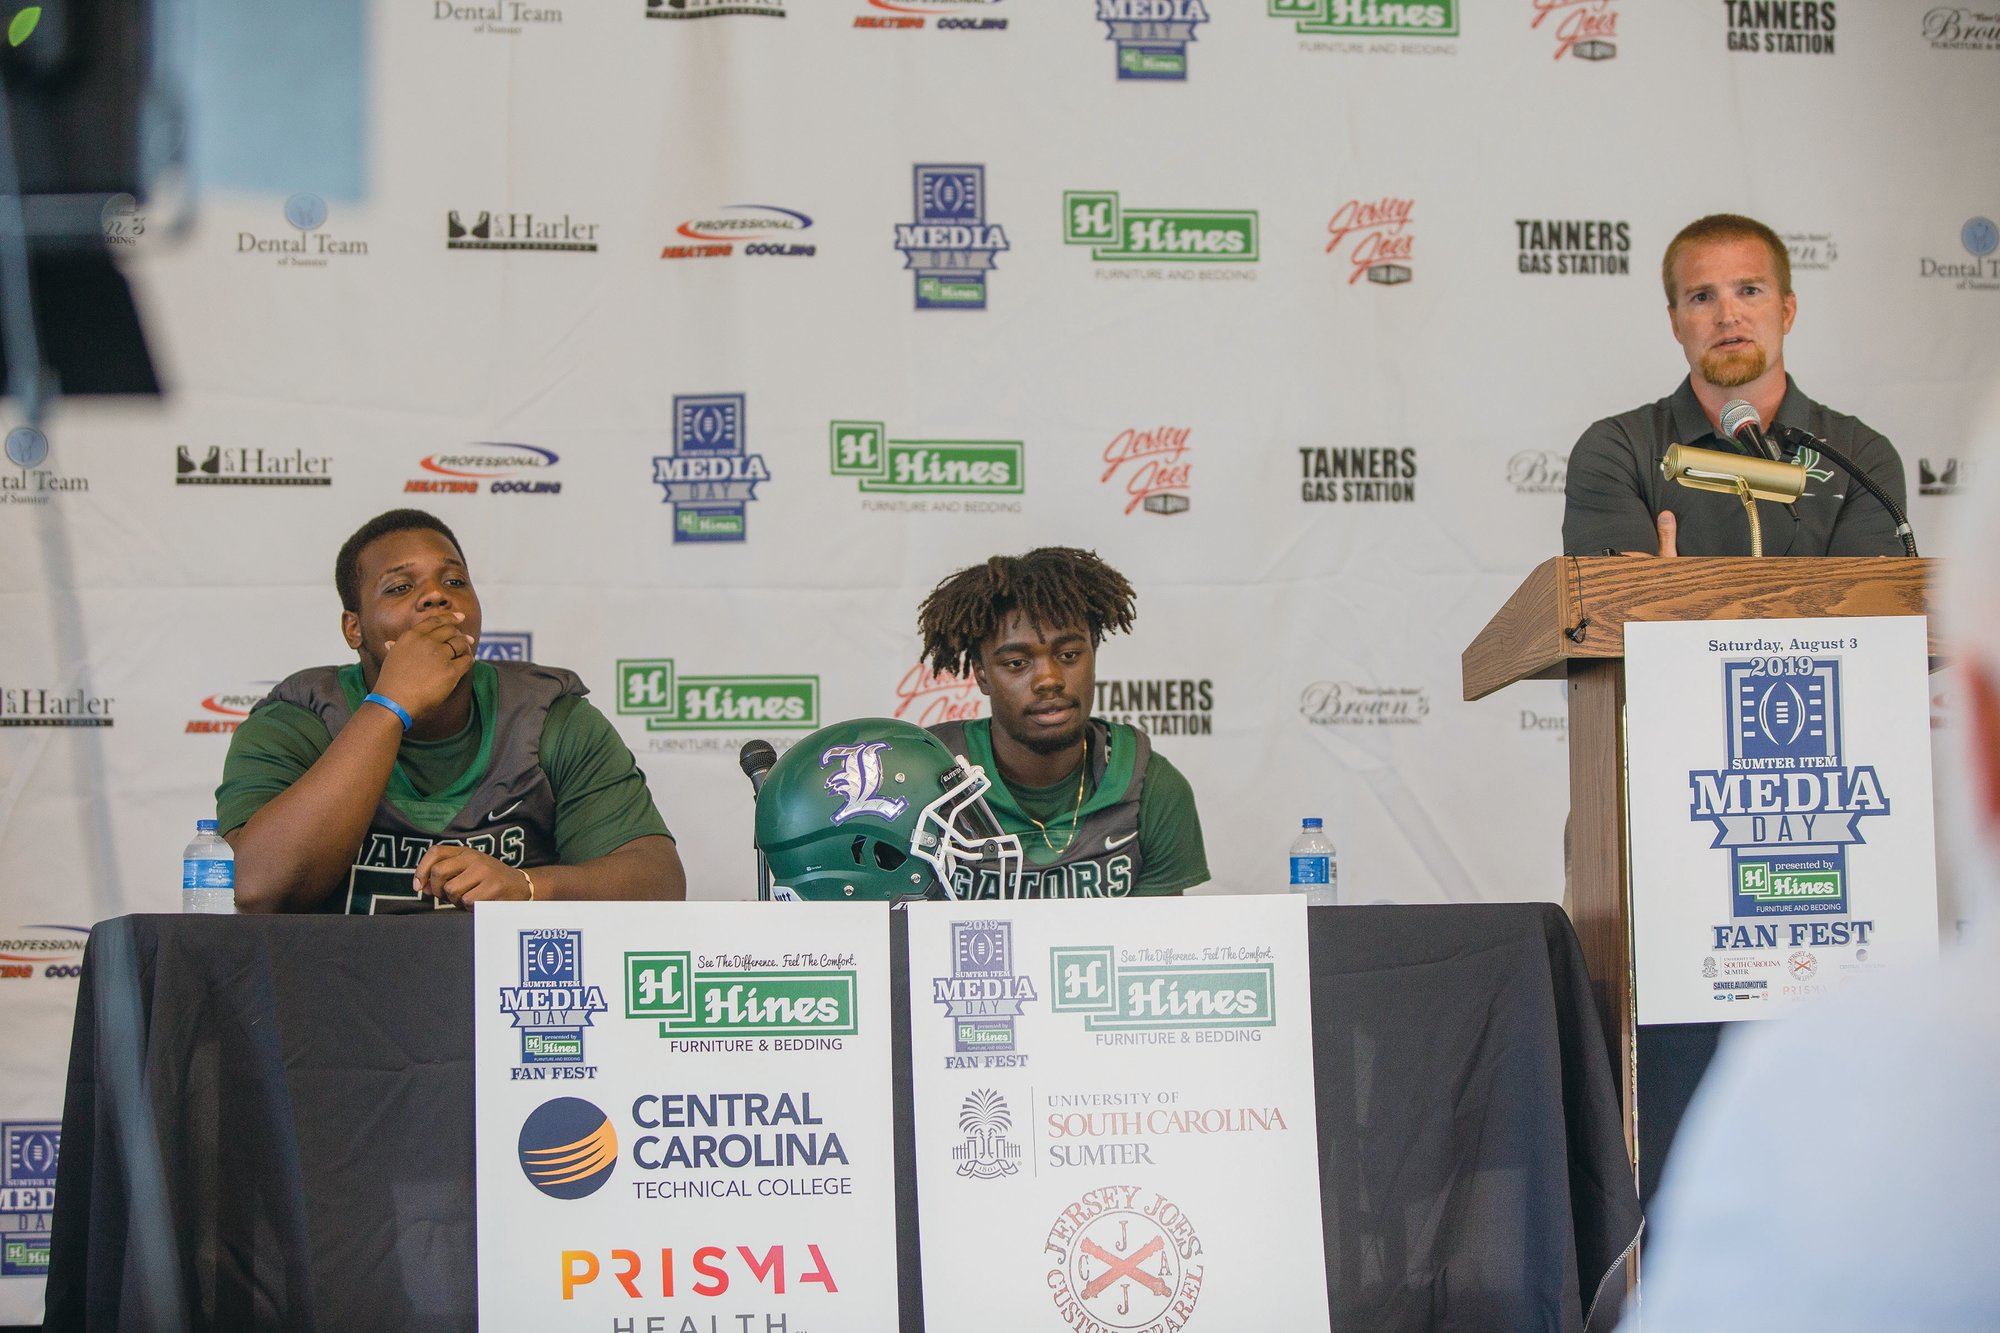 Micah Green / The Sumter ItemLakewood head coach Larry Cornelius speaks while two of his players, Kyliek Baxter, left, and Justin Anderson listen during The Sumter Item Media Day Fan Fest earlier this month. The Gators open their season on Friday at home against Colleton County.